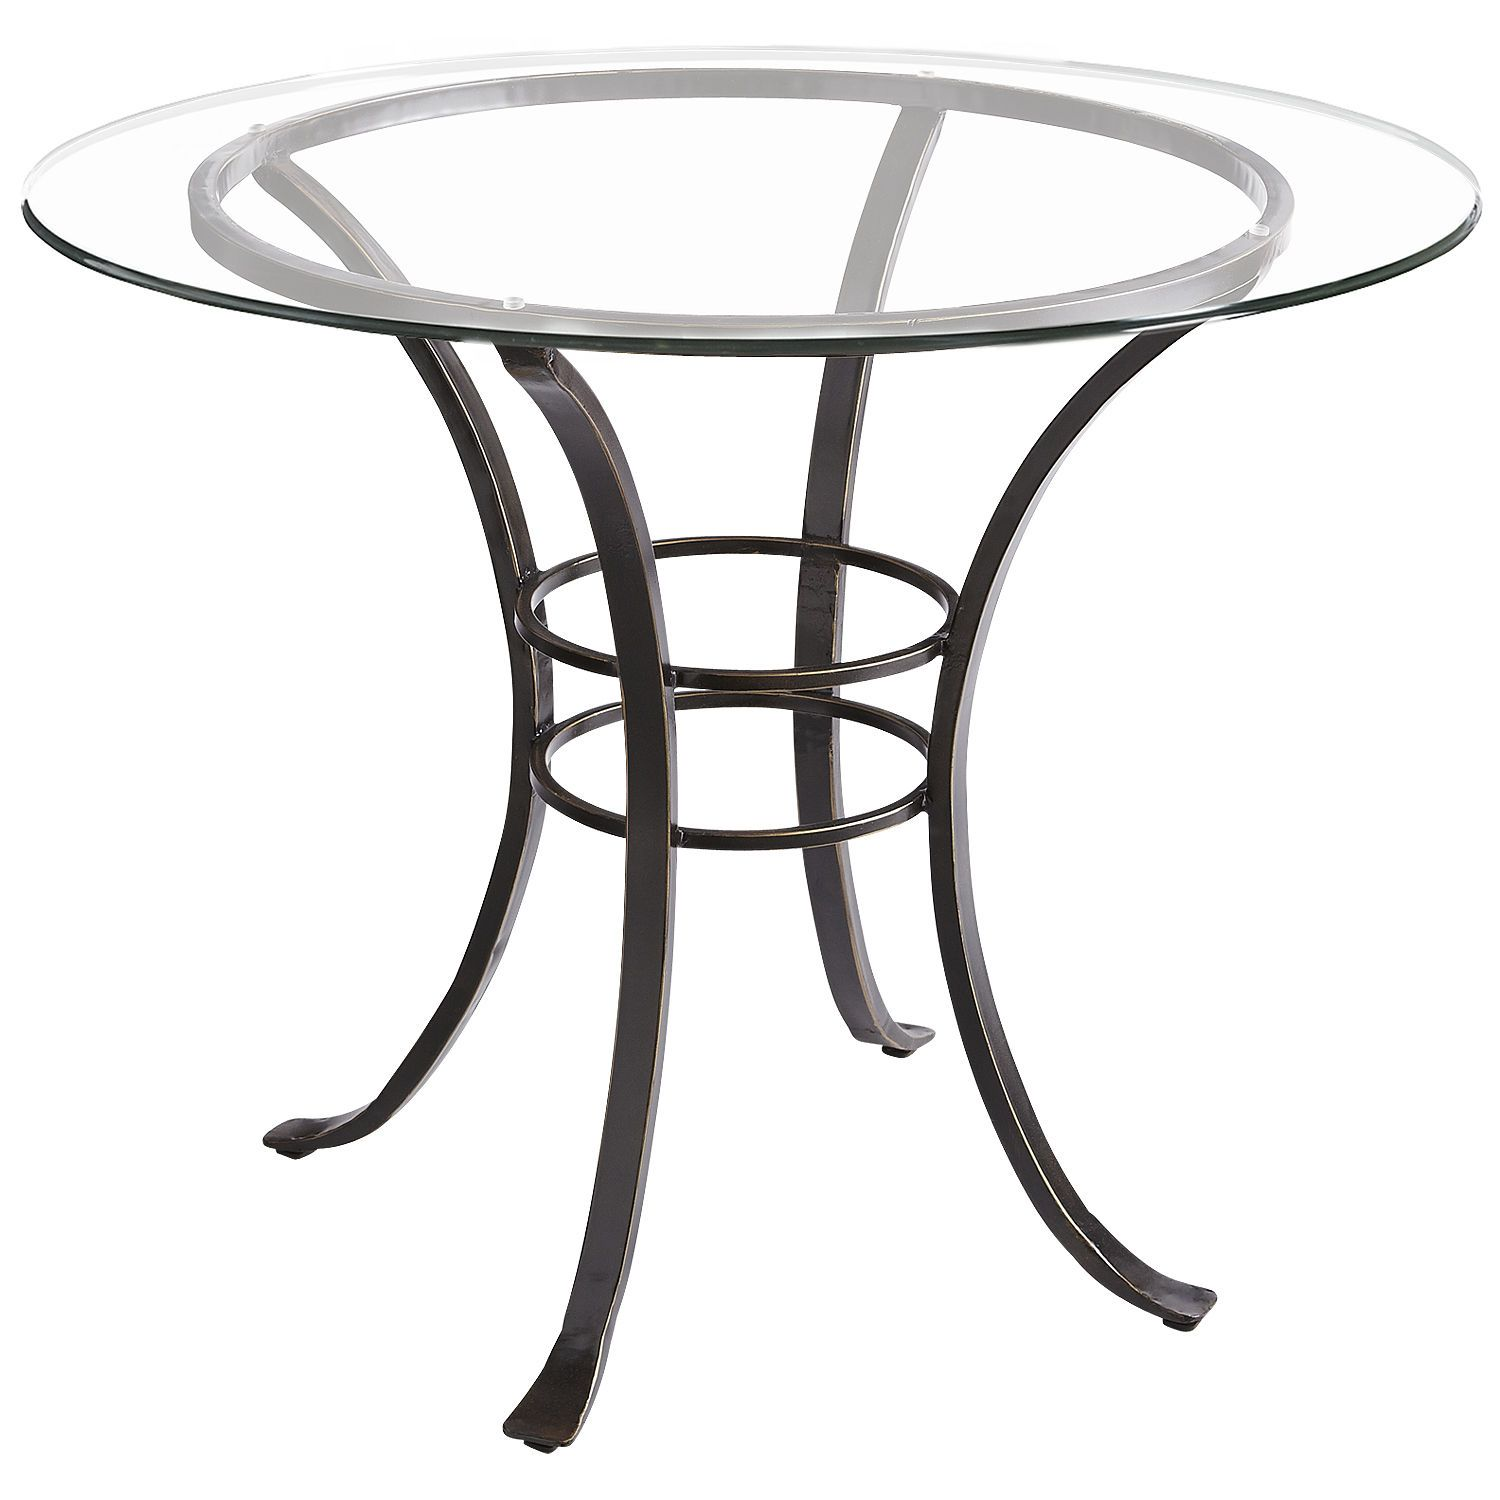 Arden Dining Table Base From Pier One You Could Add An Oval